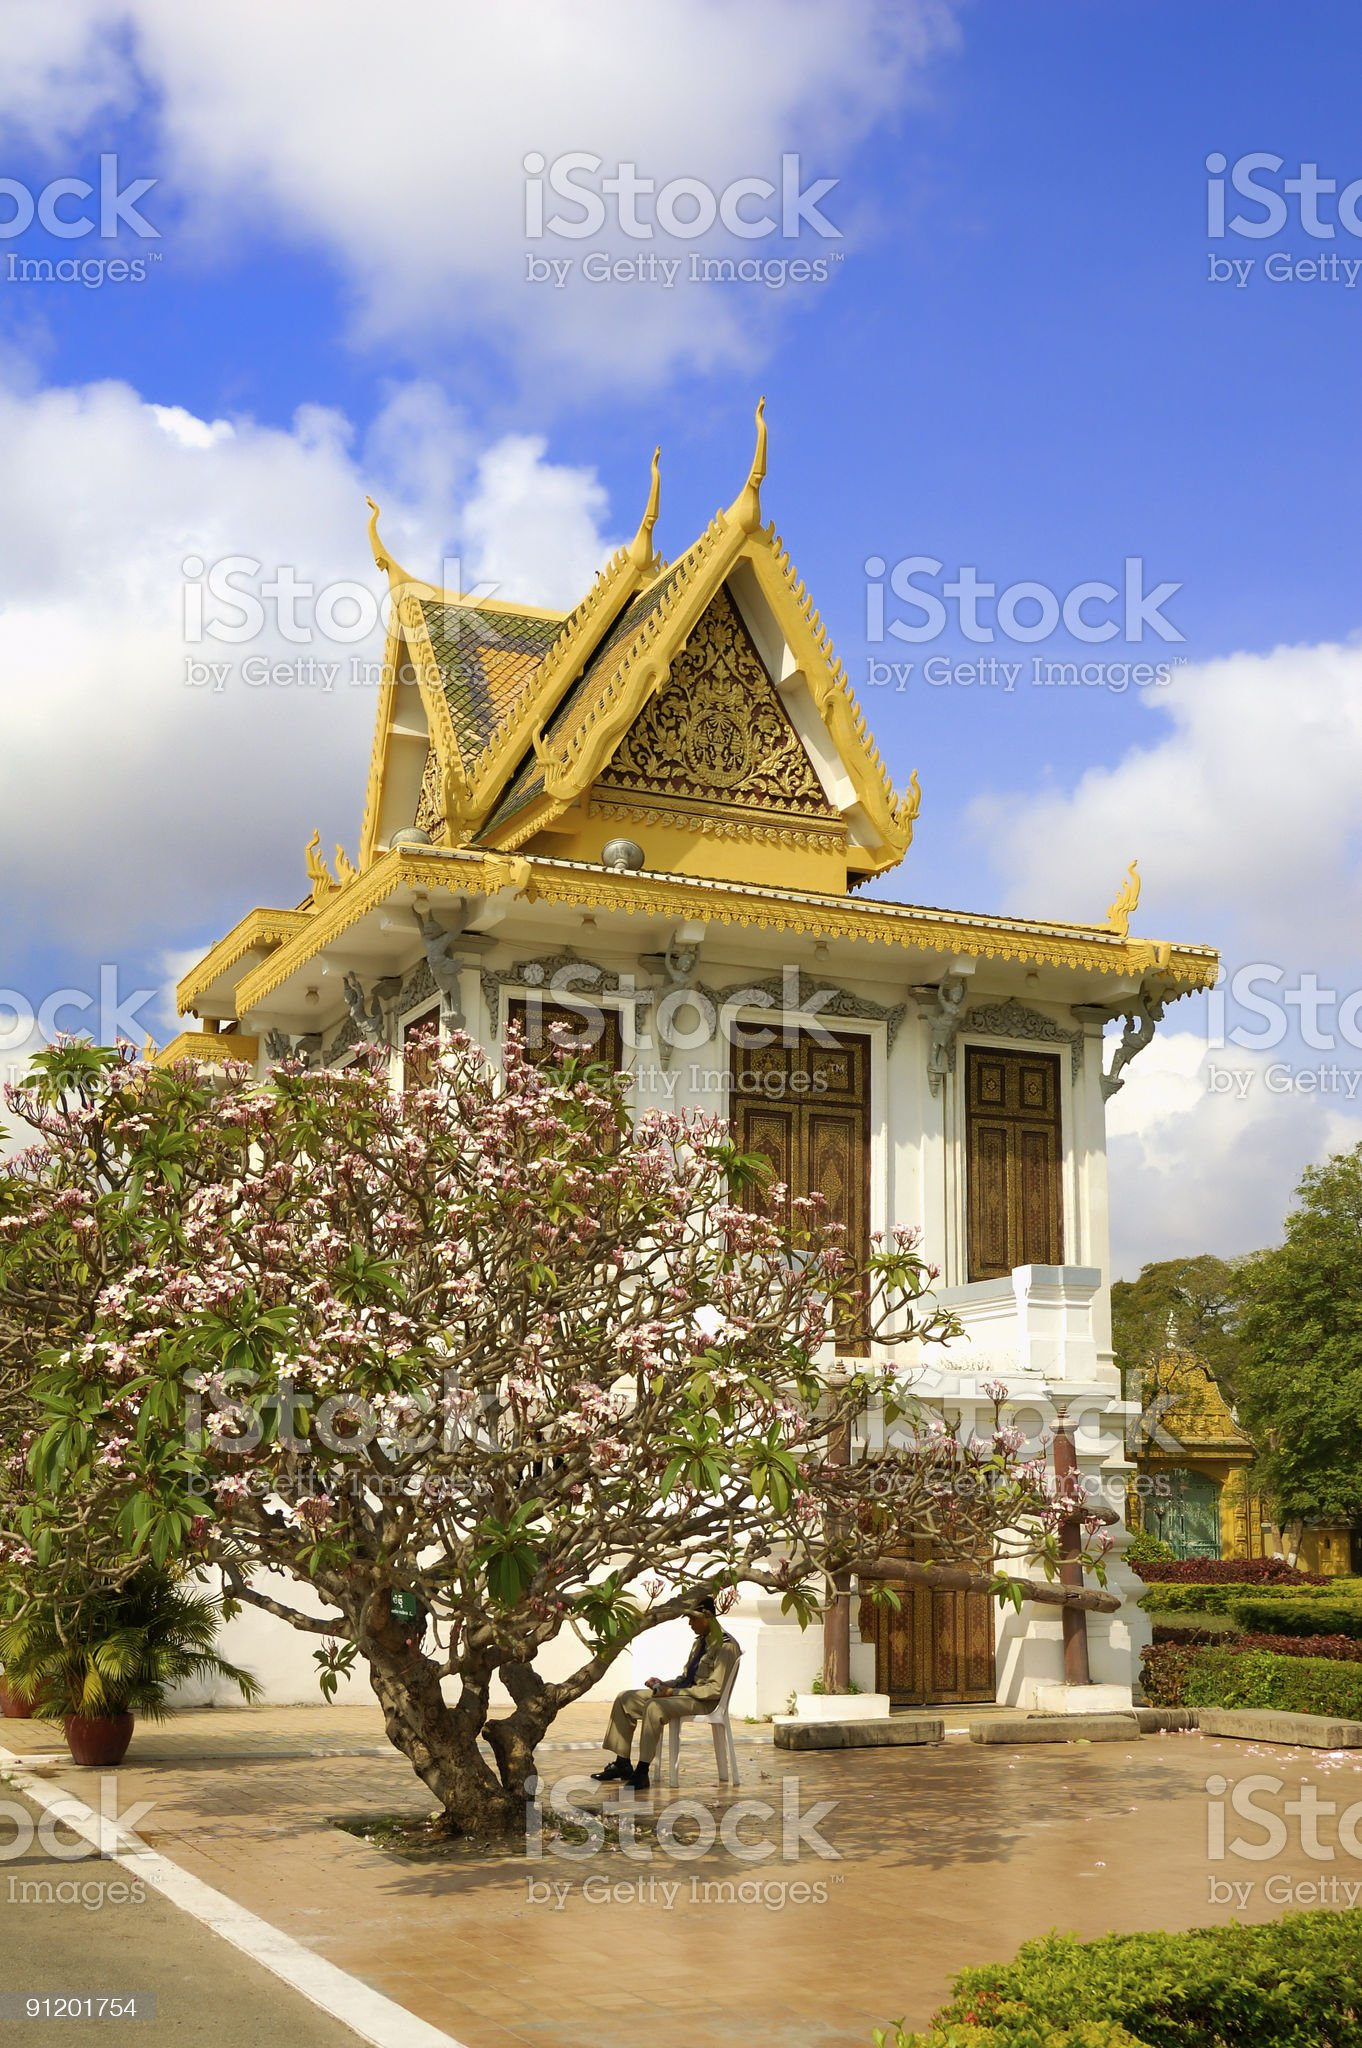 Building and tree  in the Royal palace of Cambodia royalty-free stock photo